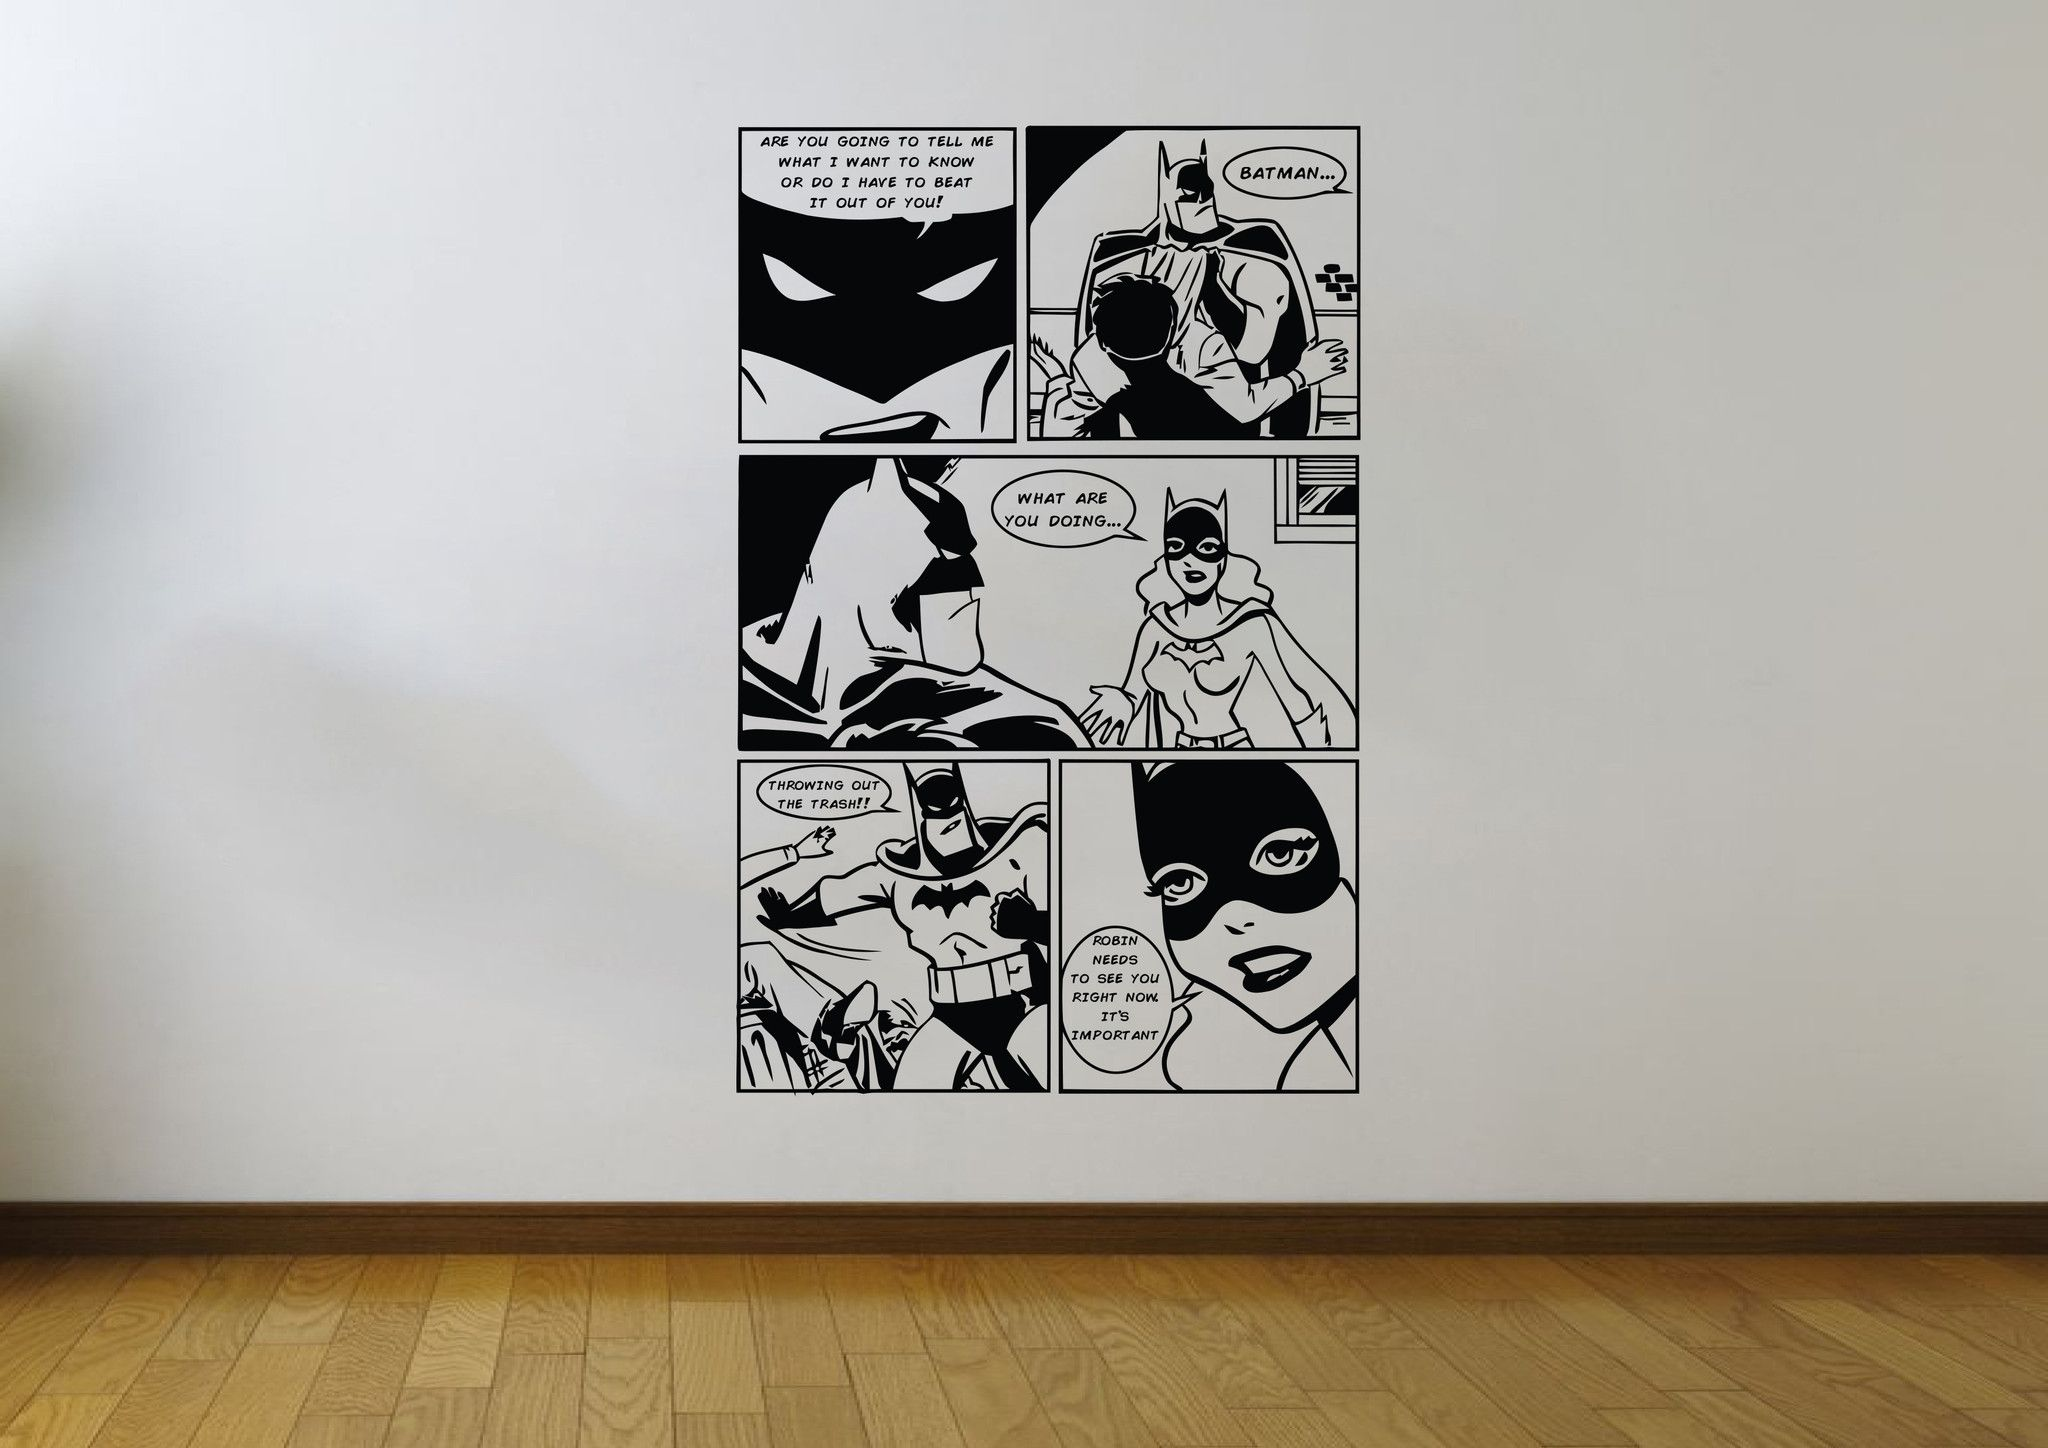 Batman Brave and The Bold Page 2 - 5 Panel Wall Art Stickers - iwallstickers